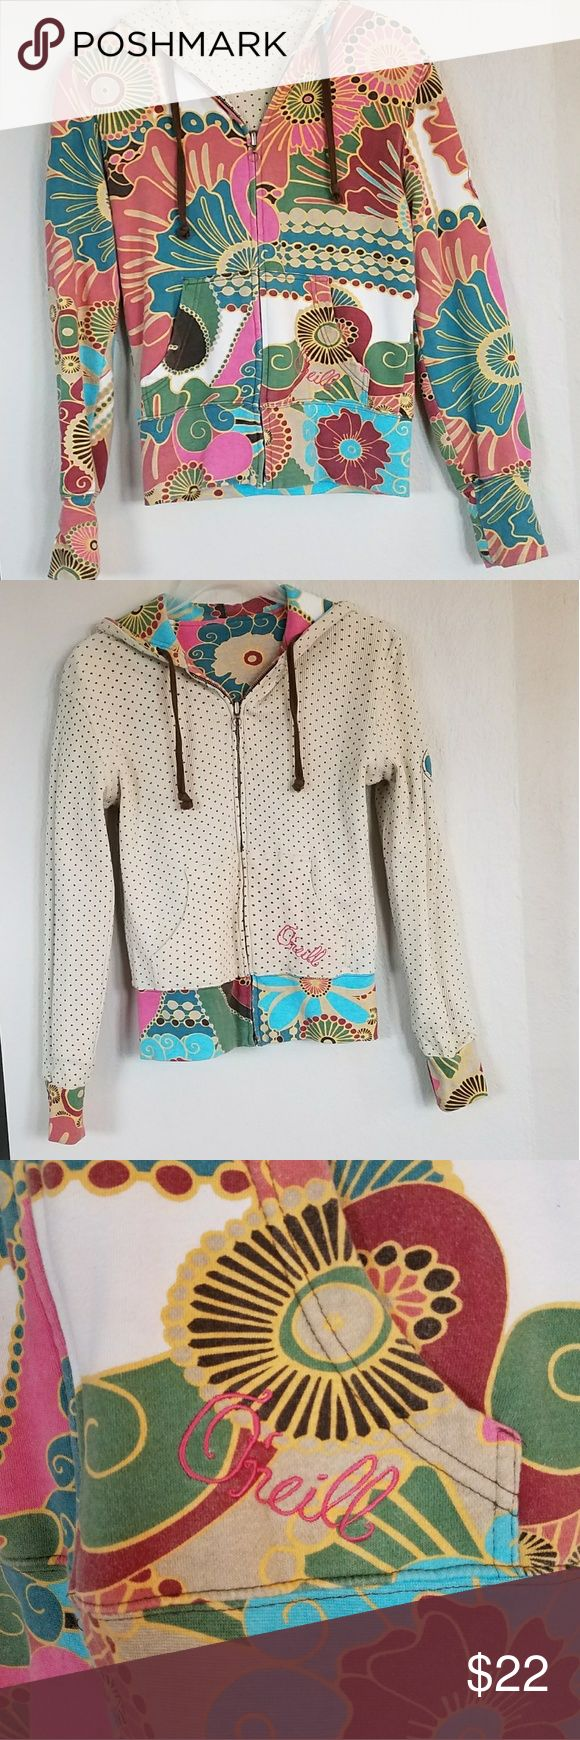 Reversible O'Neill zip up Reversible O'Neill zip up cute floral pattern on one side and tan and brown polka dots on other O'Neill Tops Sweatshirts & Hoodies